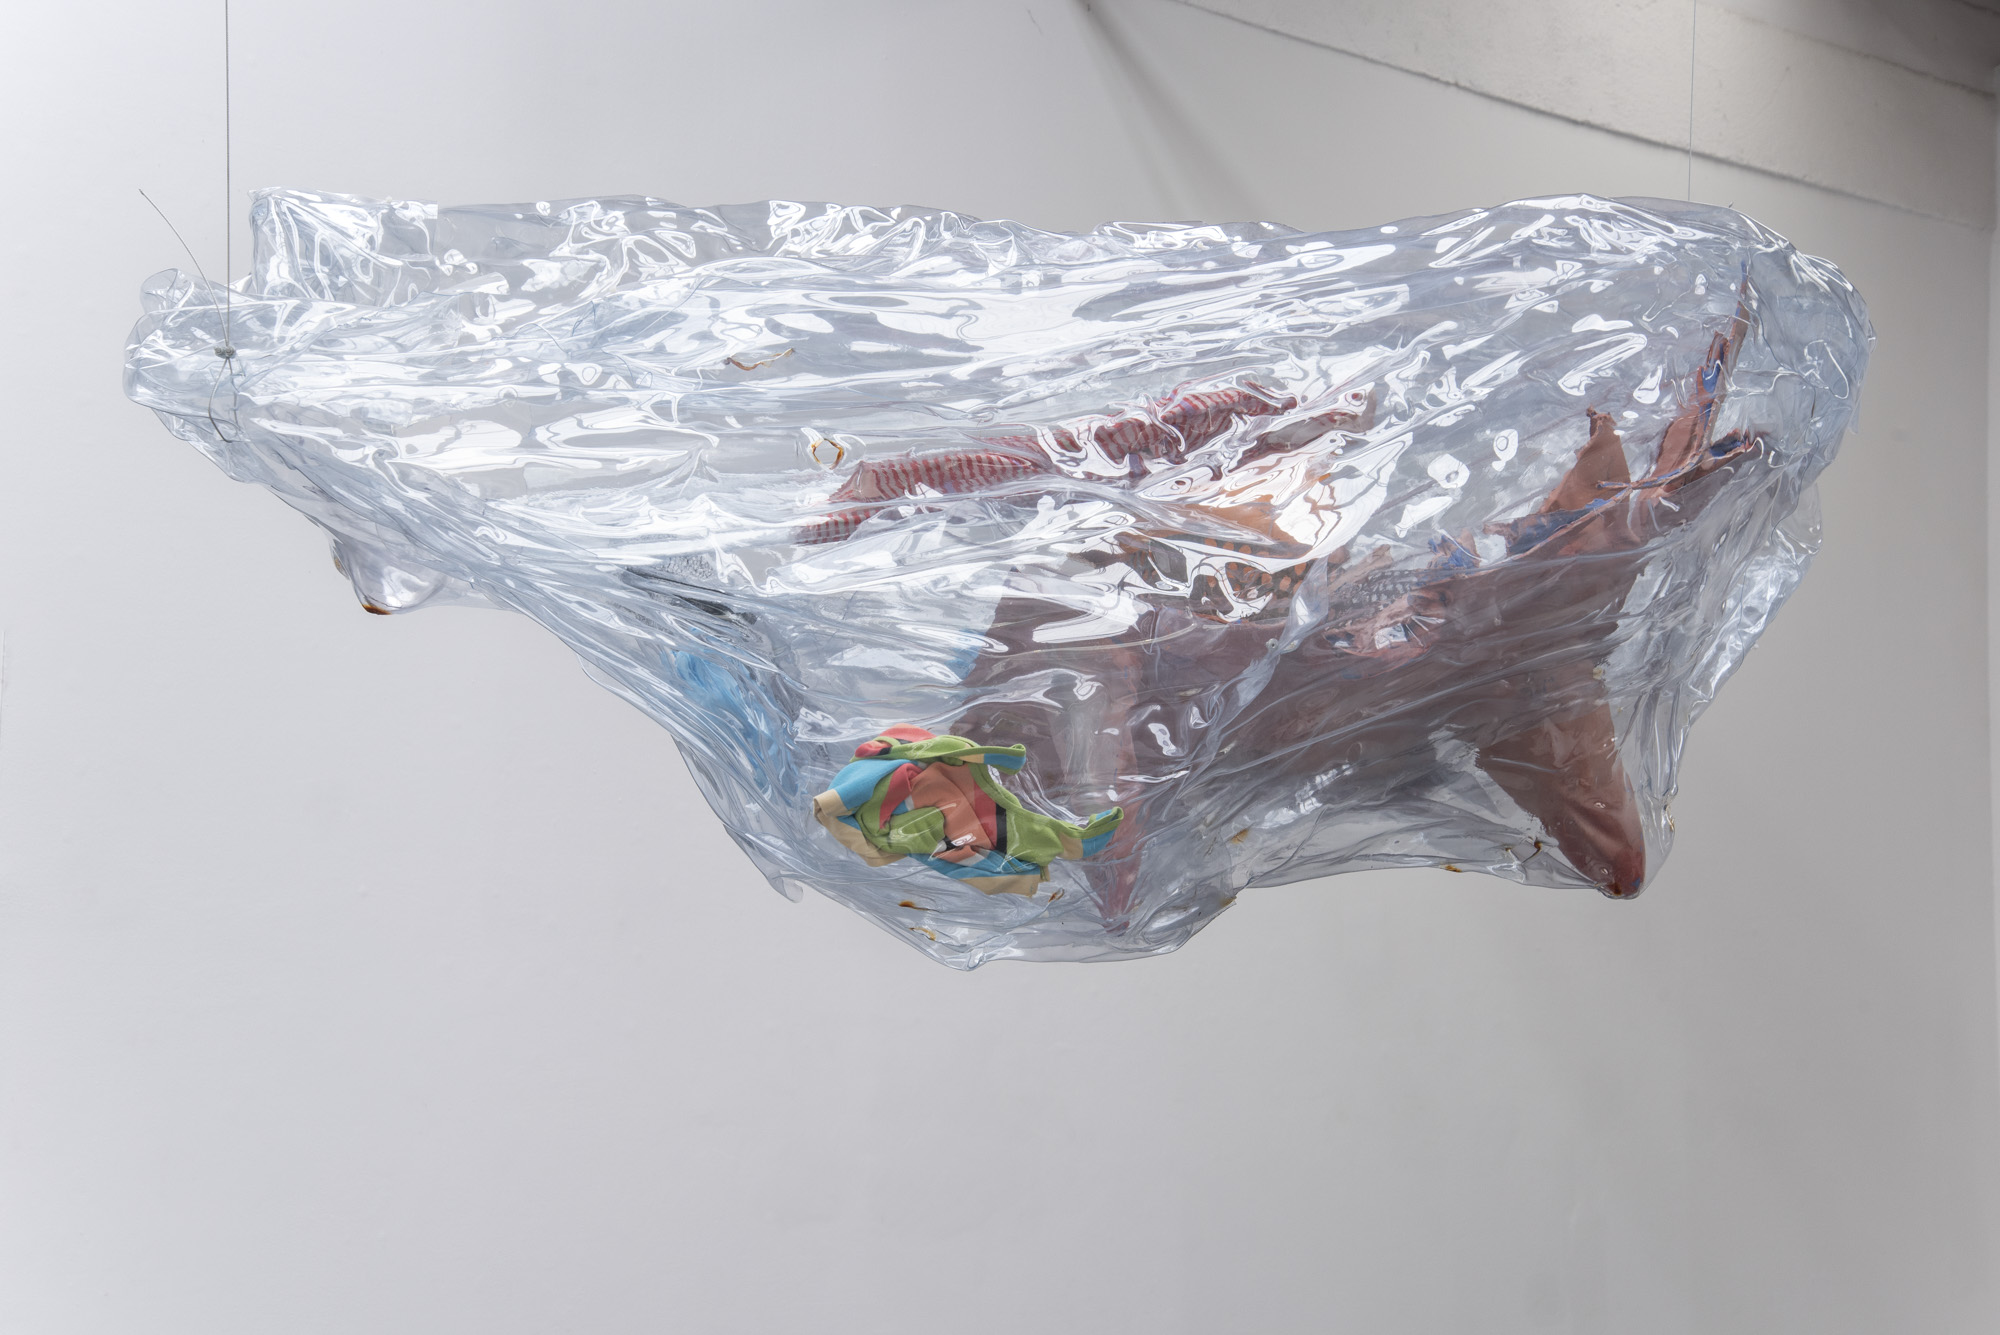 Anita Molinero, Sans titre, 2019. Polycarbonate. Production et photo le 19, Crac.